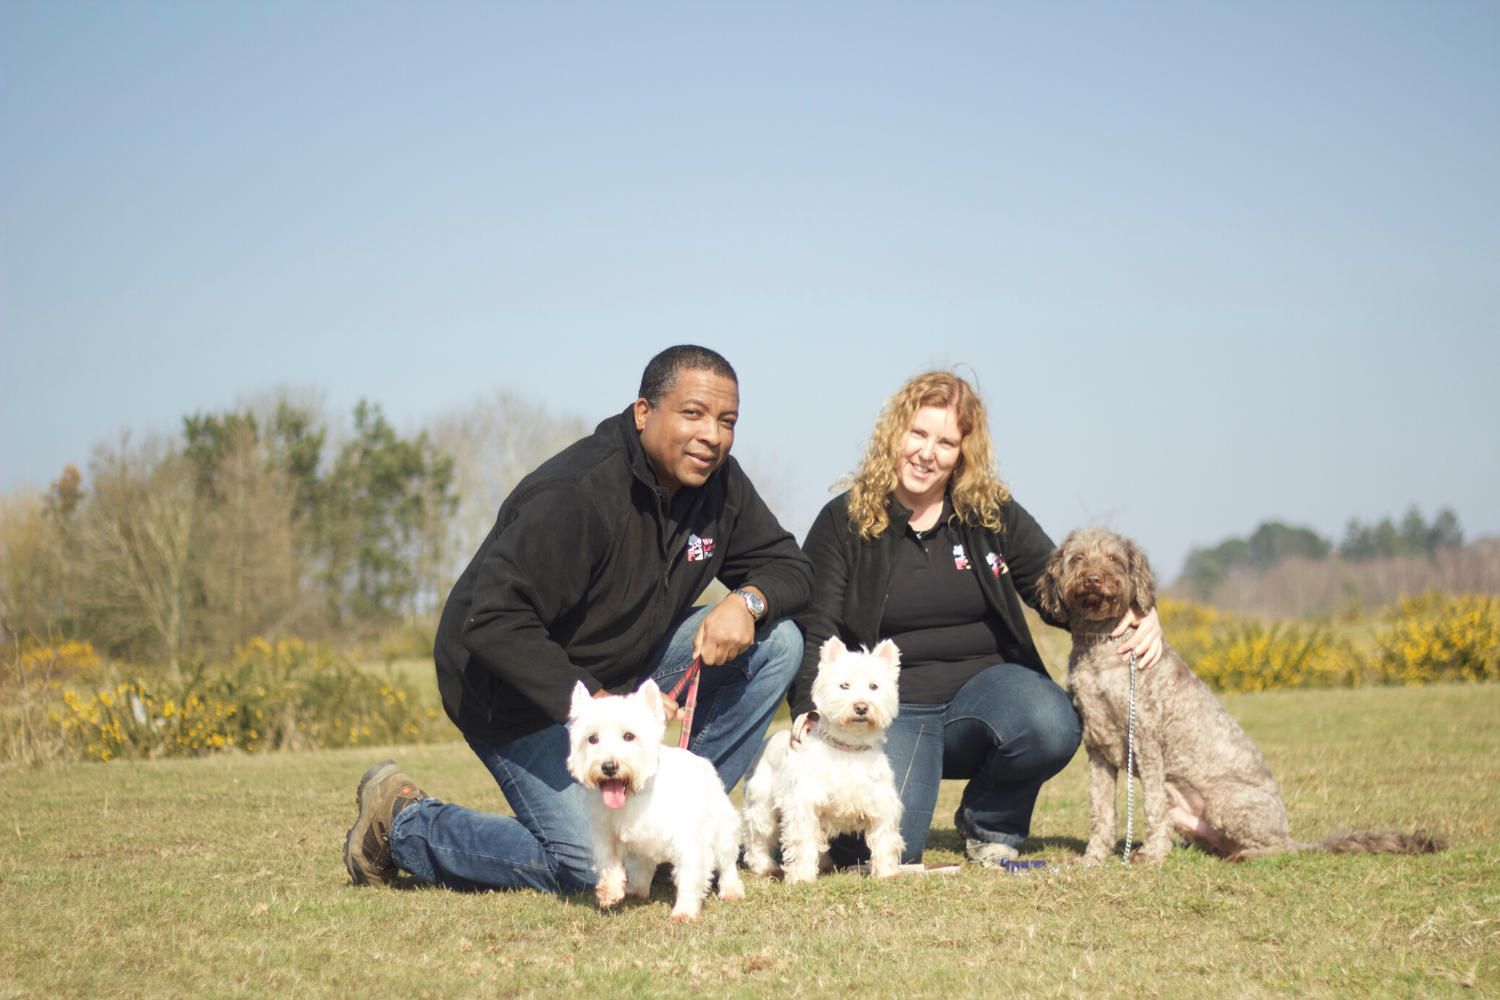 Dog walking has more than just physical benefits